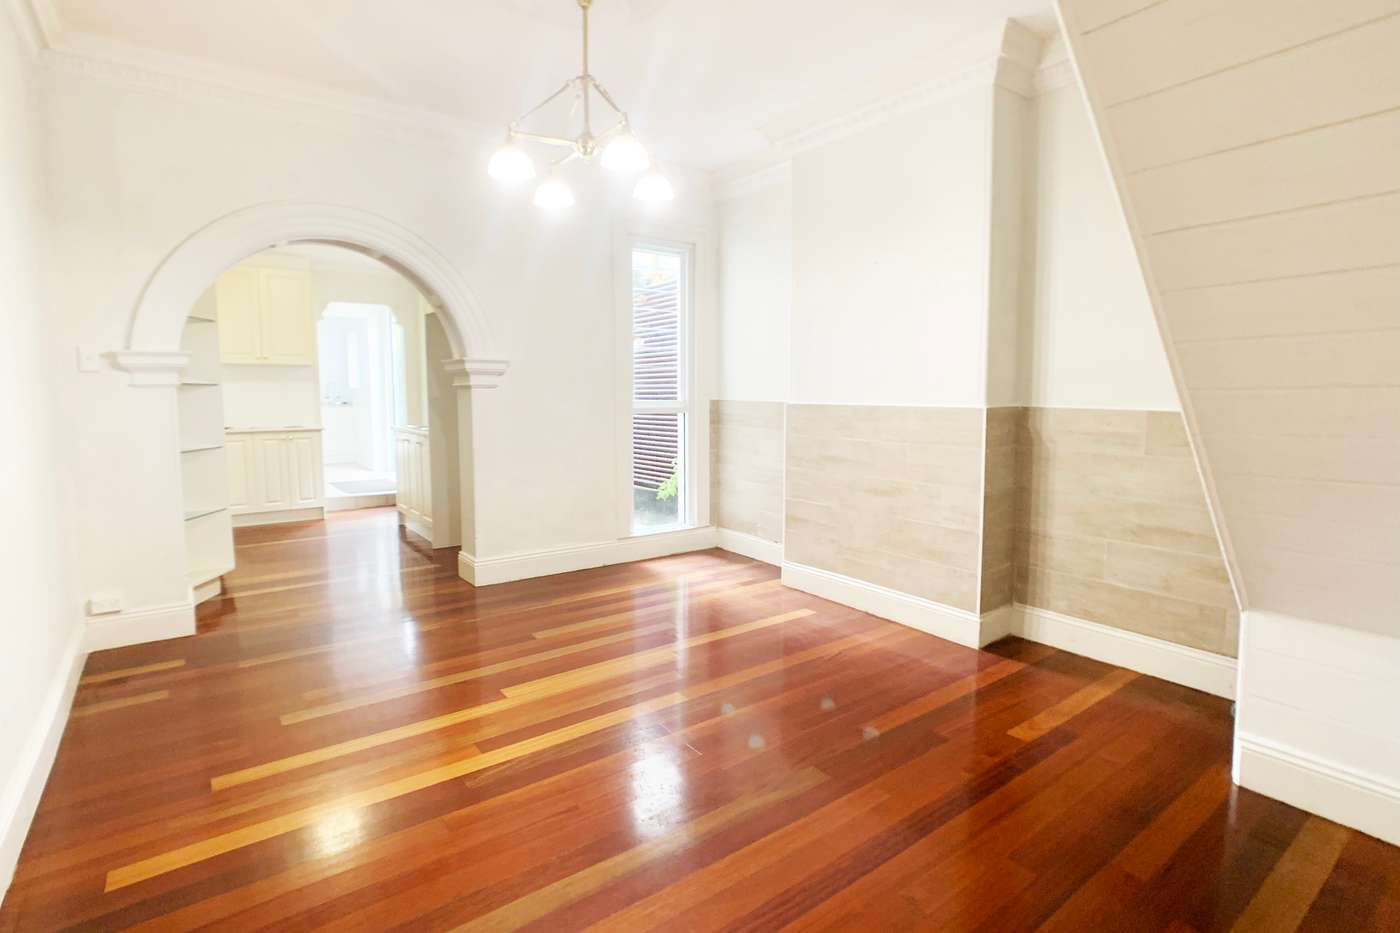 Main view of Homely terrace listing, 23 Wood Street, Randwick, NSW 2031